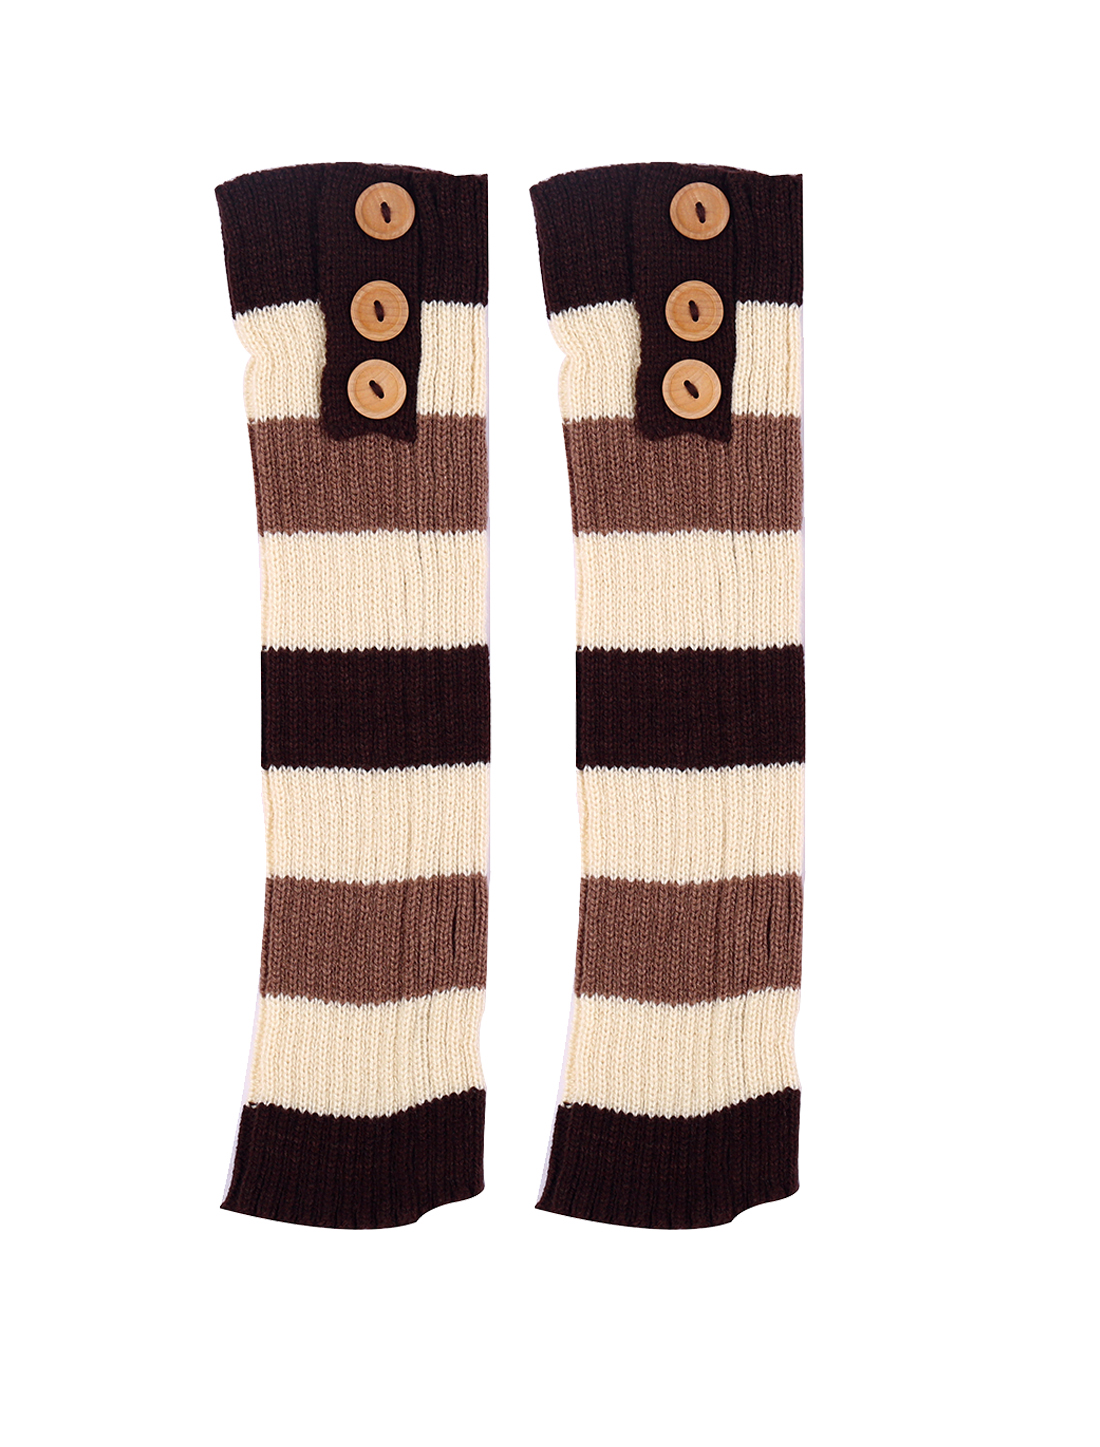 Lady Buttons Decor Knit Contrast Color Stripes Leg Warmers Pair Coffee